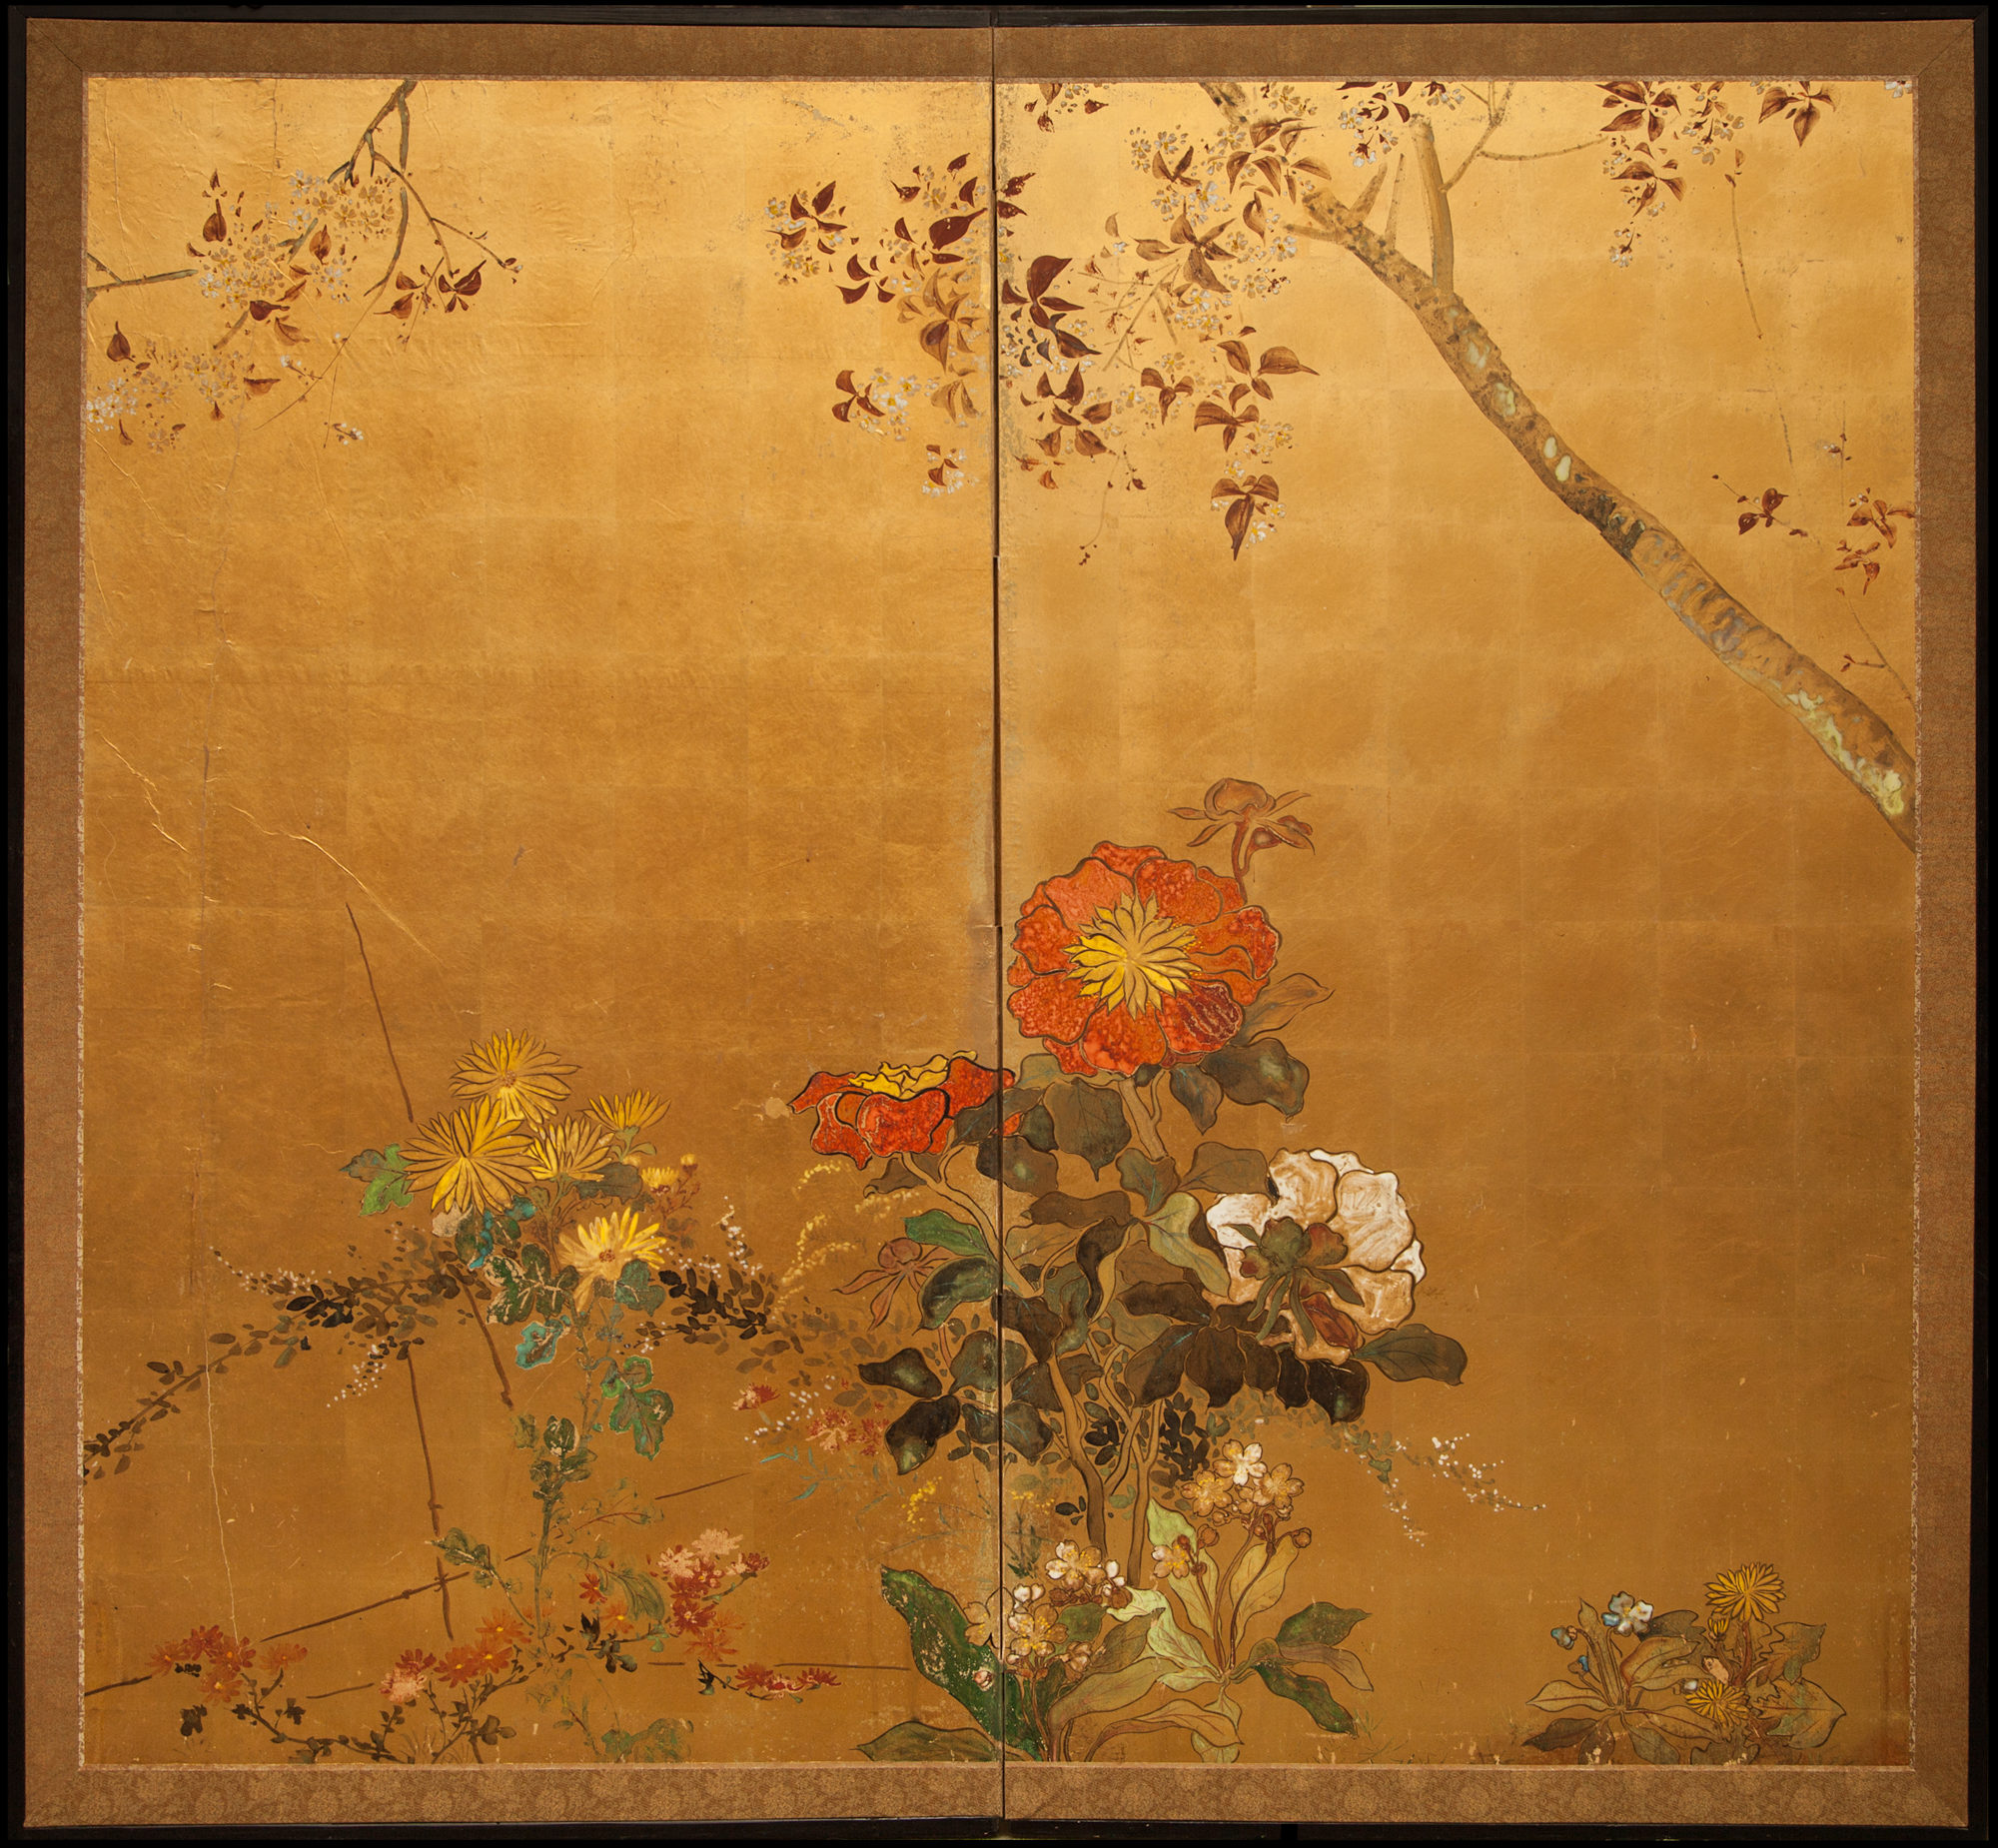 Japanese Two Panel Screen: Summer Floral Landscape on Gold